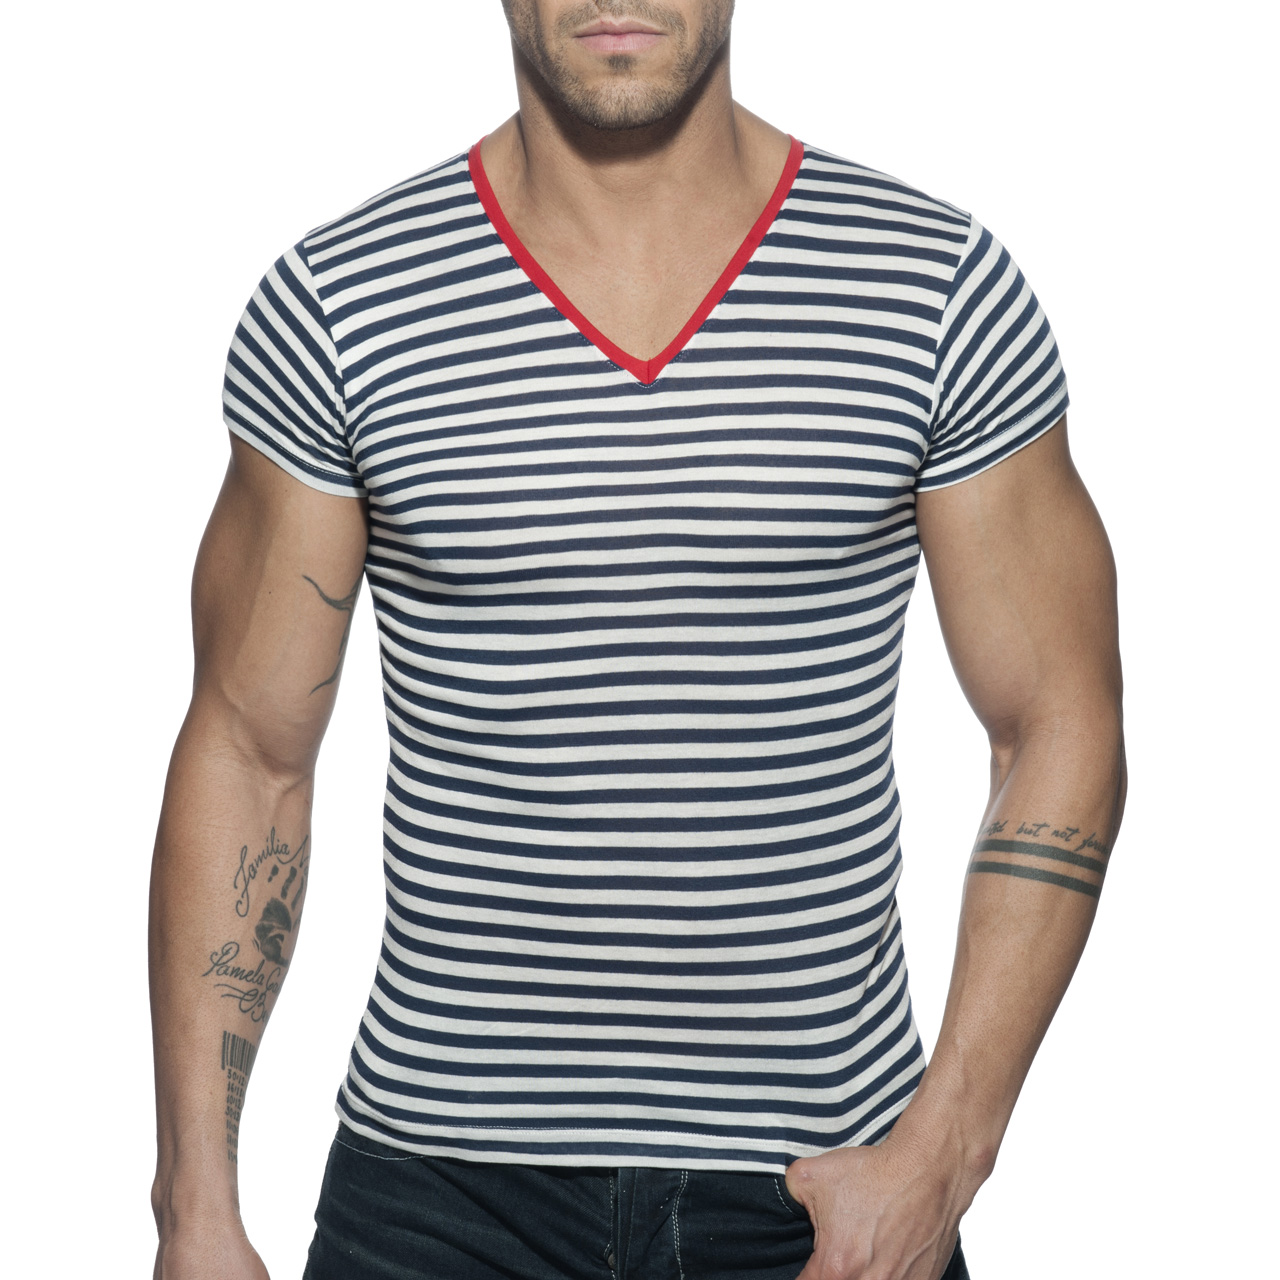 SAILOR T-SHIRT RED 06 - SAILOR